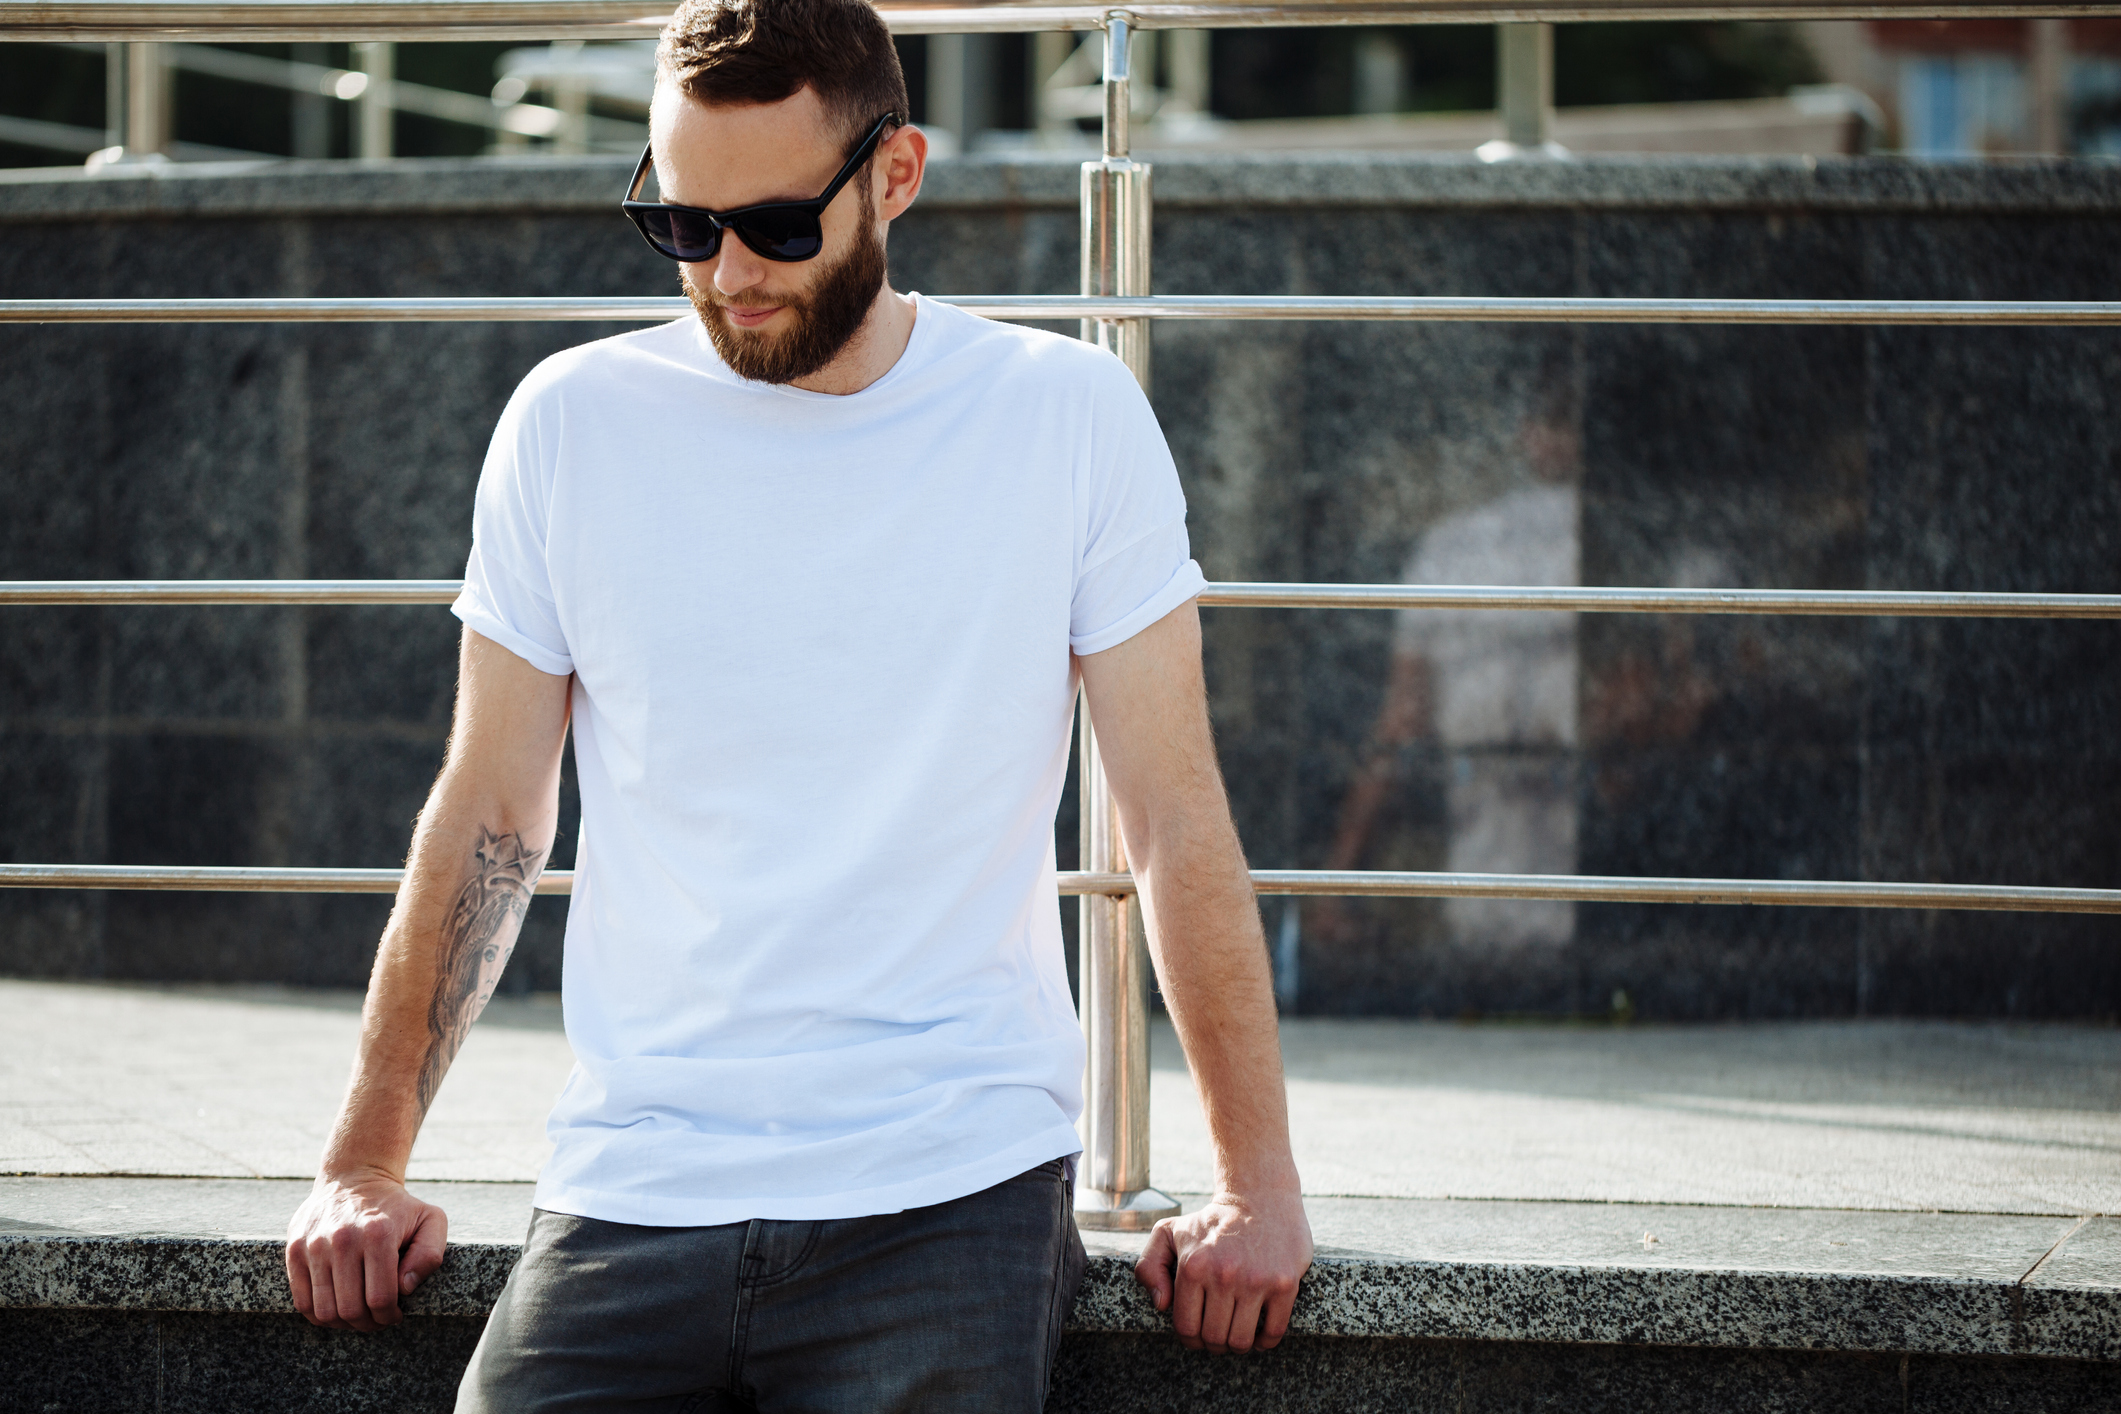 Are White Tees or Black Tees Better in the Sun? Science Weighs In. - InsideHook